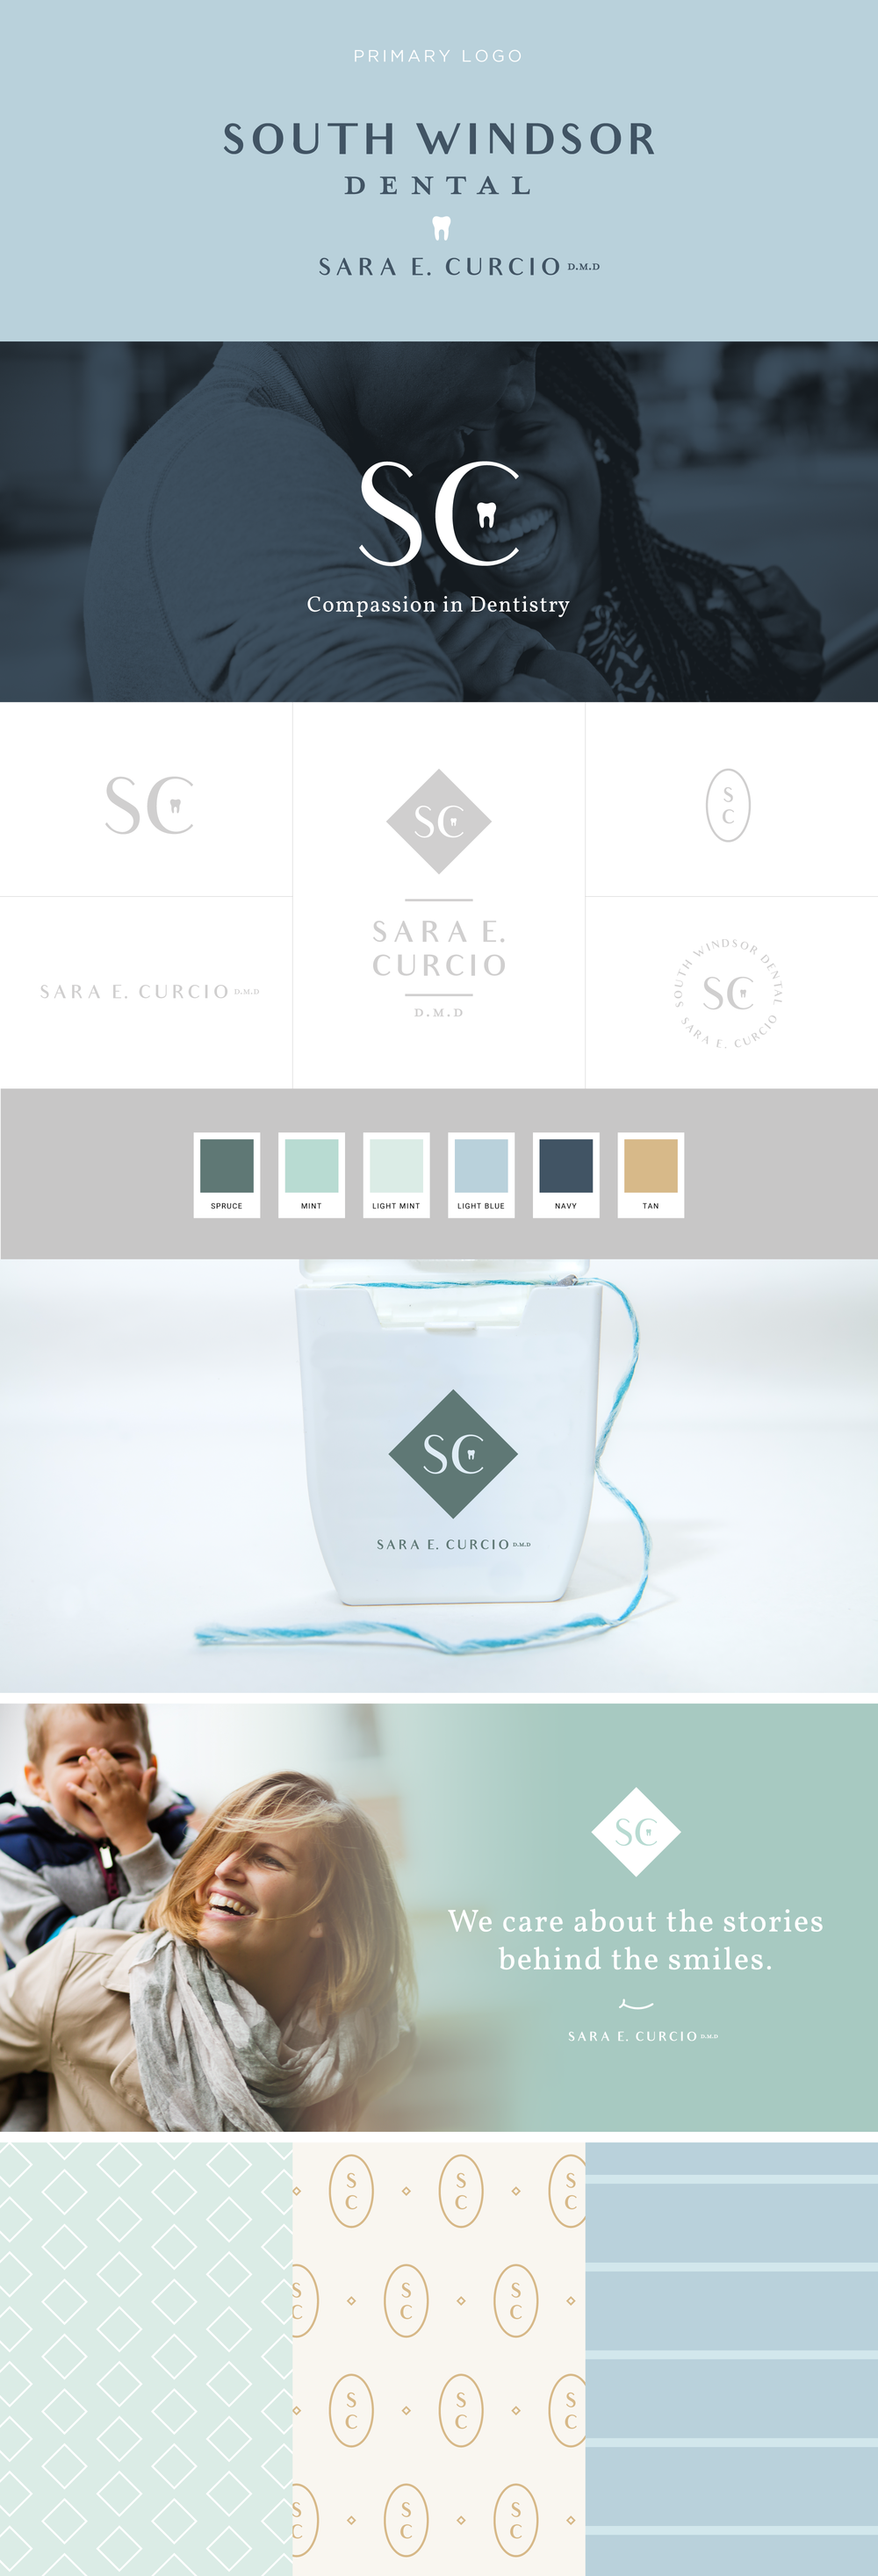 South Windsor Dental brand design | Pace Creative Design Studio